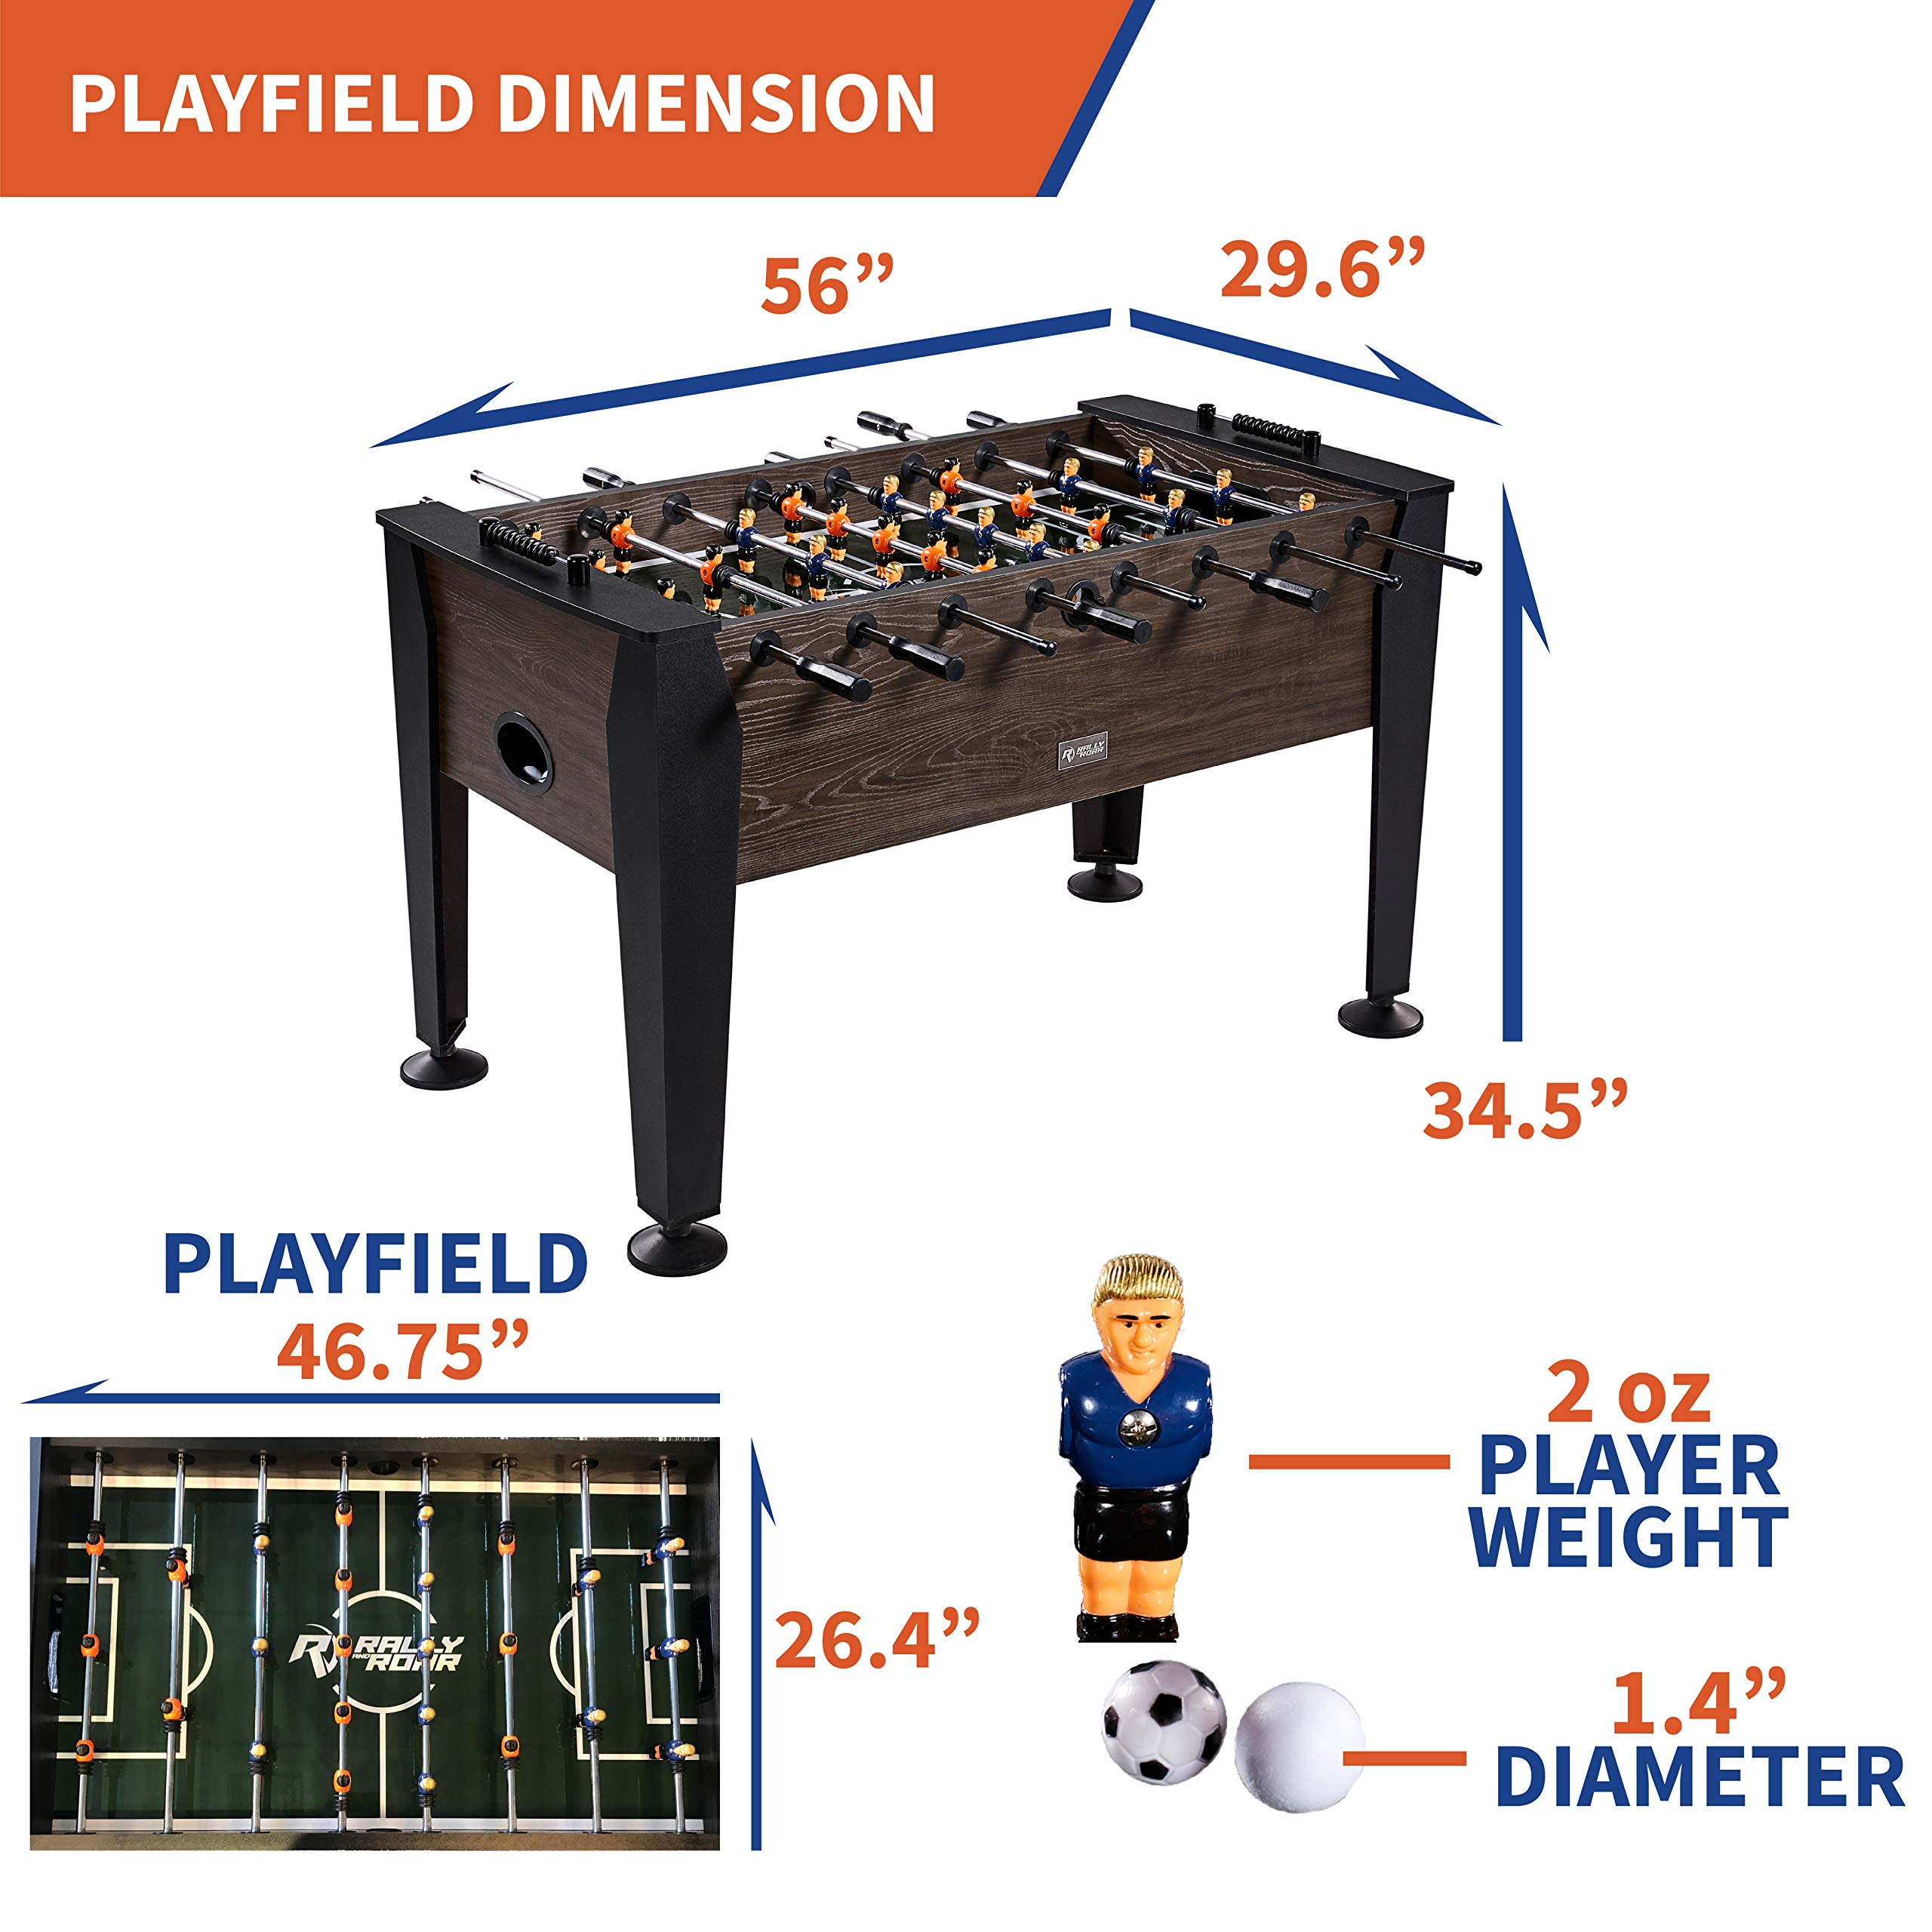 """Rally and Roar Foosball Table Game – 56"""" Standard Size Fun, Multi Person Table Soccer Adults, Kids - Recreational Foosball Games Game Rooms, Arcades, Bars, Parties, Family Night by Rally and Roar (Image #5)"""